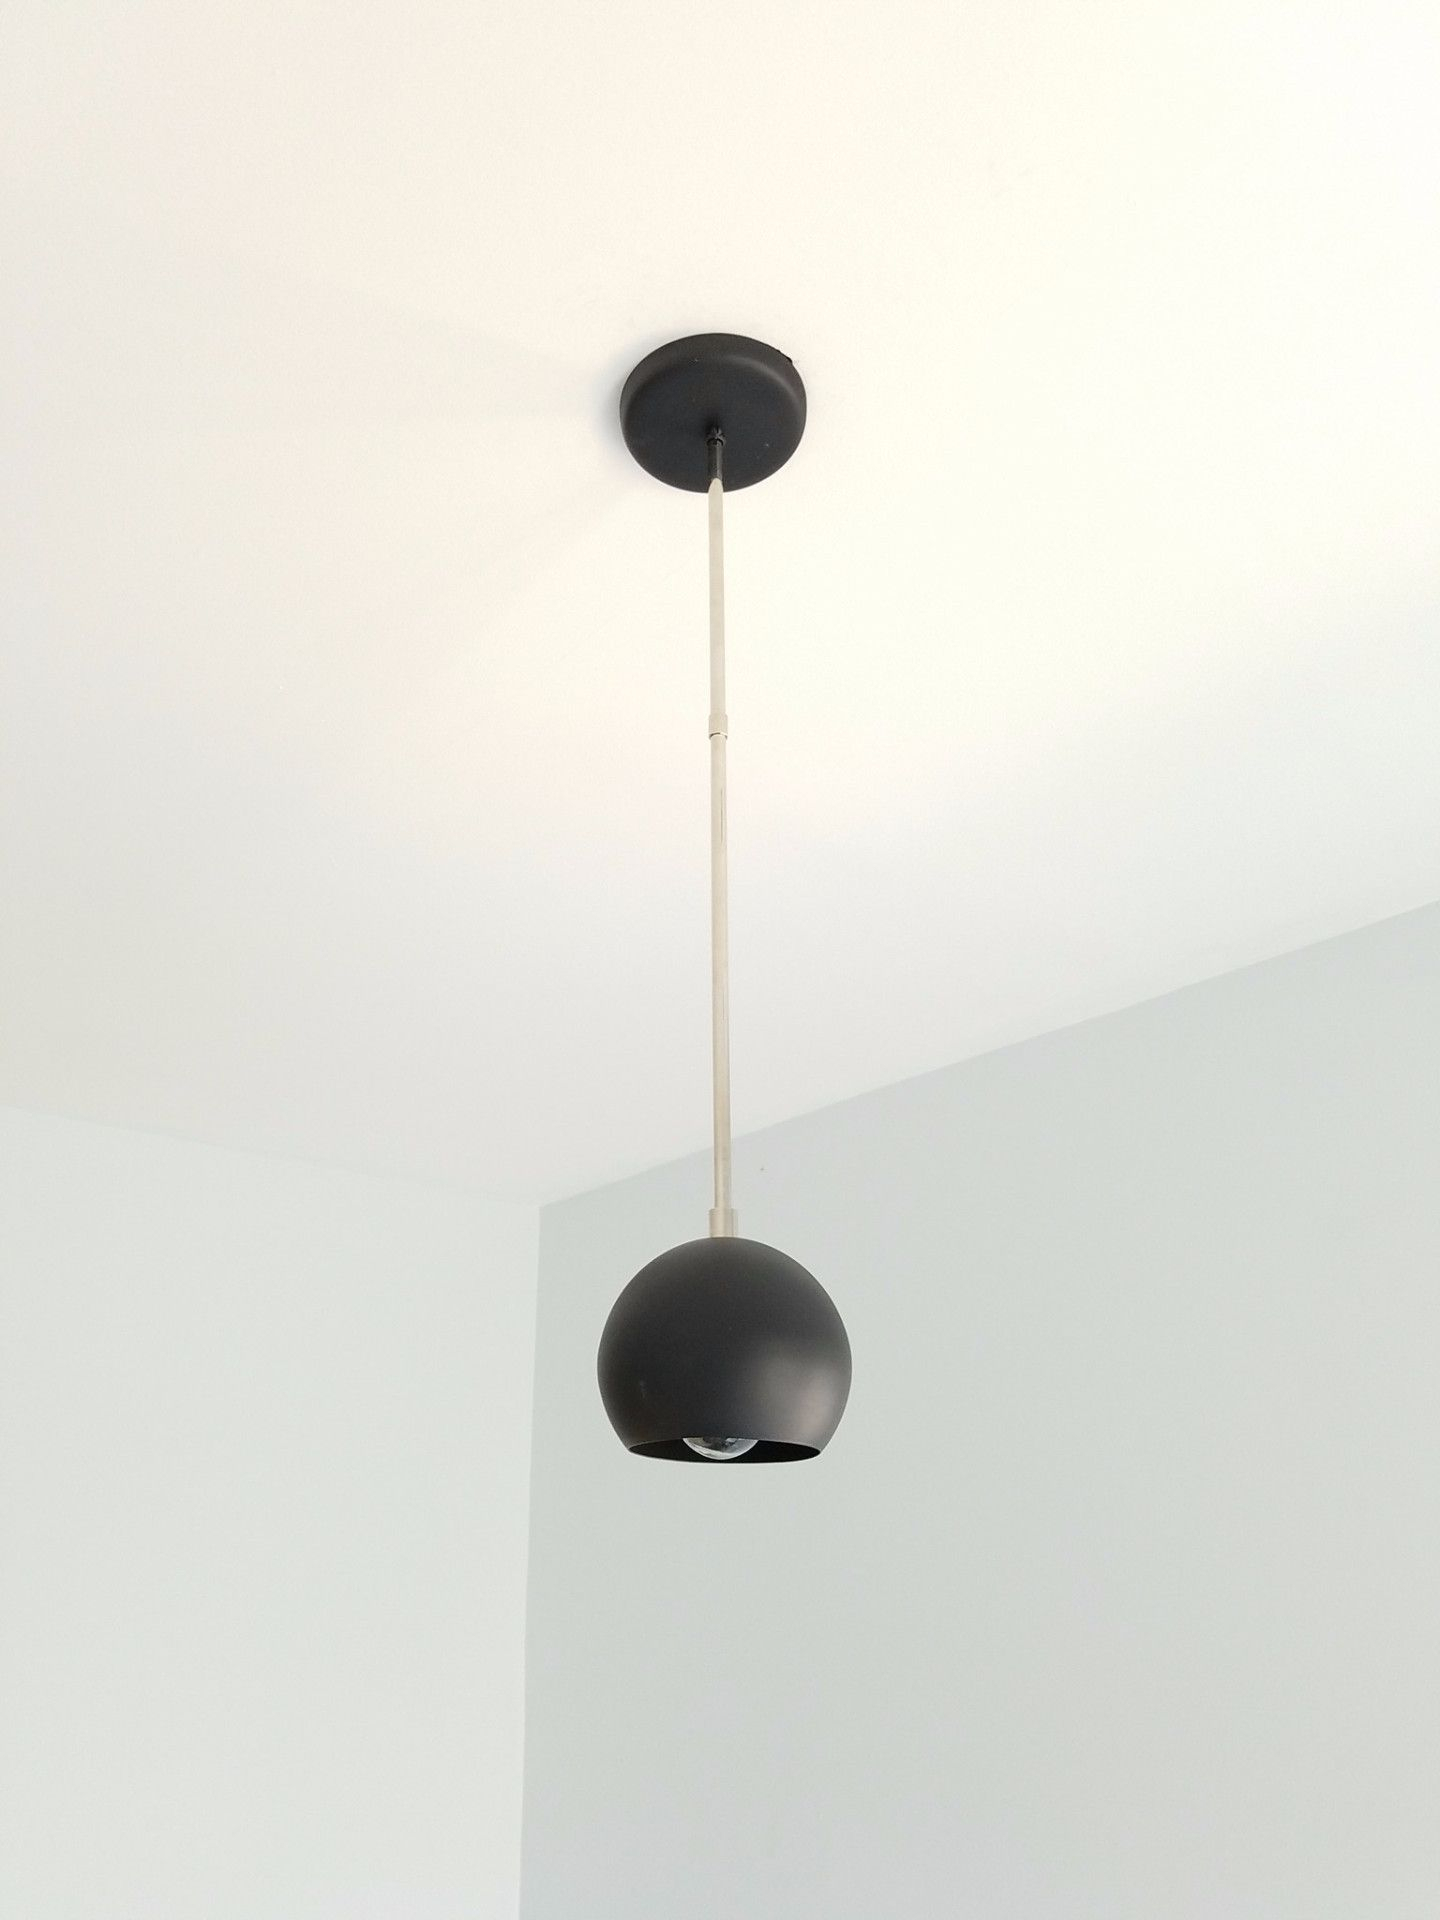 Loa Pendant In Black | Products | Pendants, Bedroom Lighting With Regard To Adriana Black 1 Light Single Dome Pendants (Image 20 of 30)